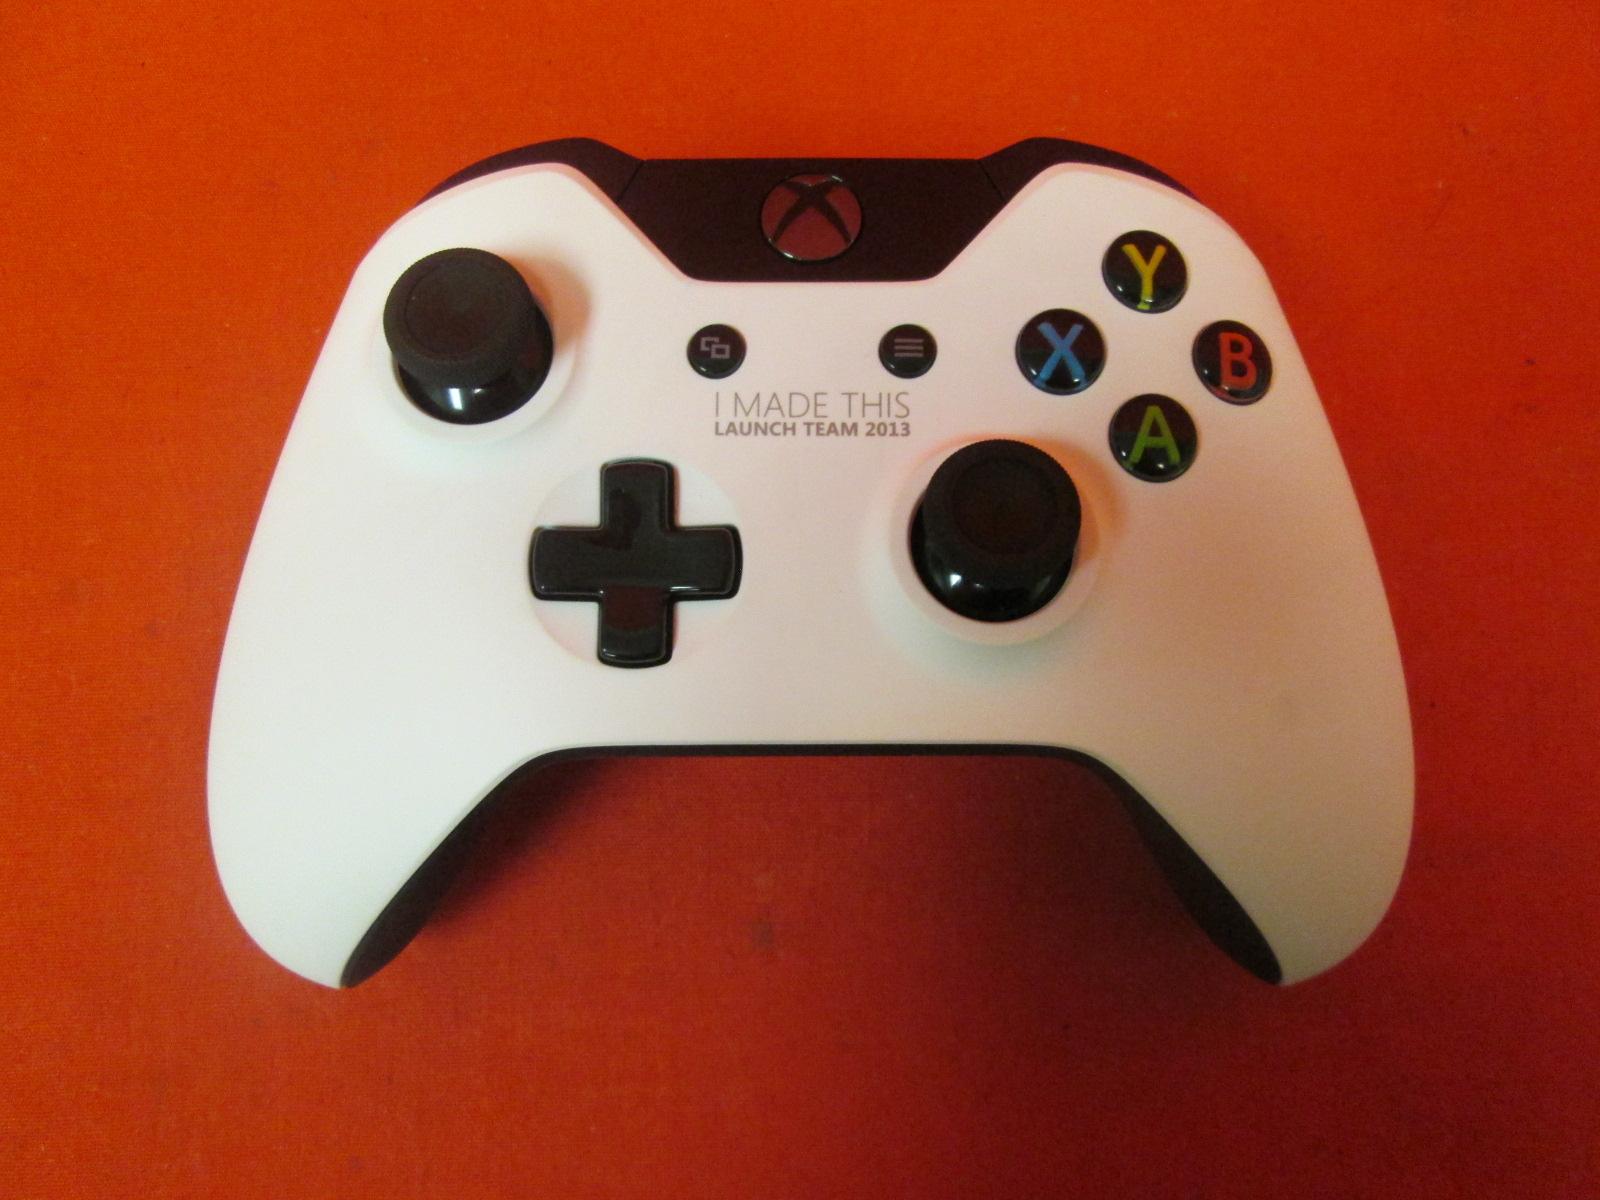 Xbox One I Made This Launch Team 2013 White Controller